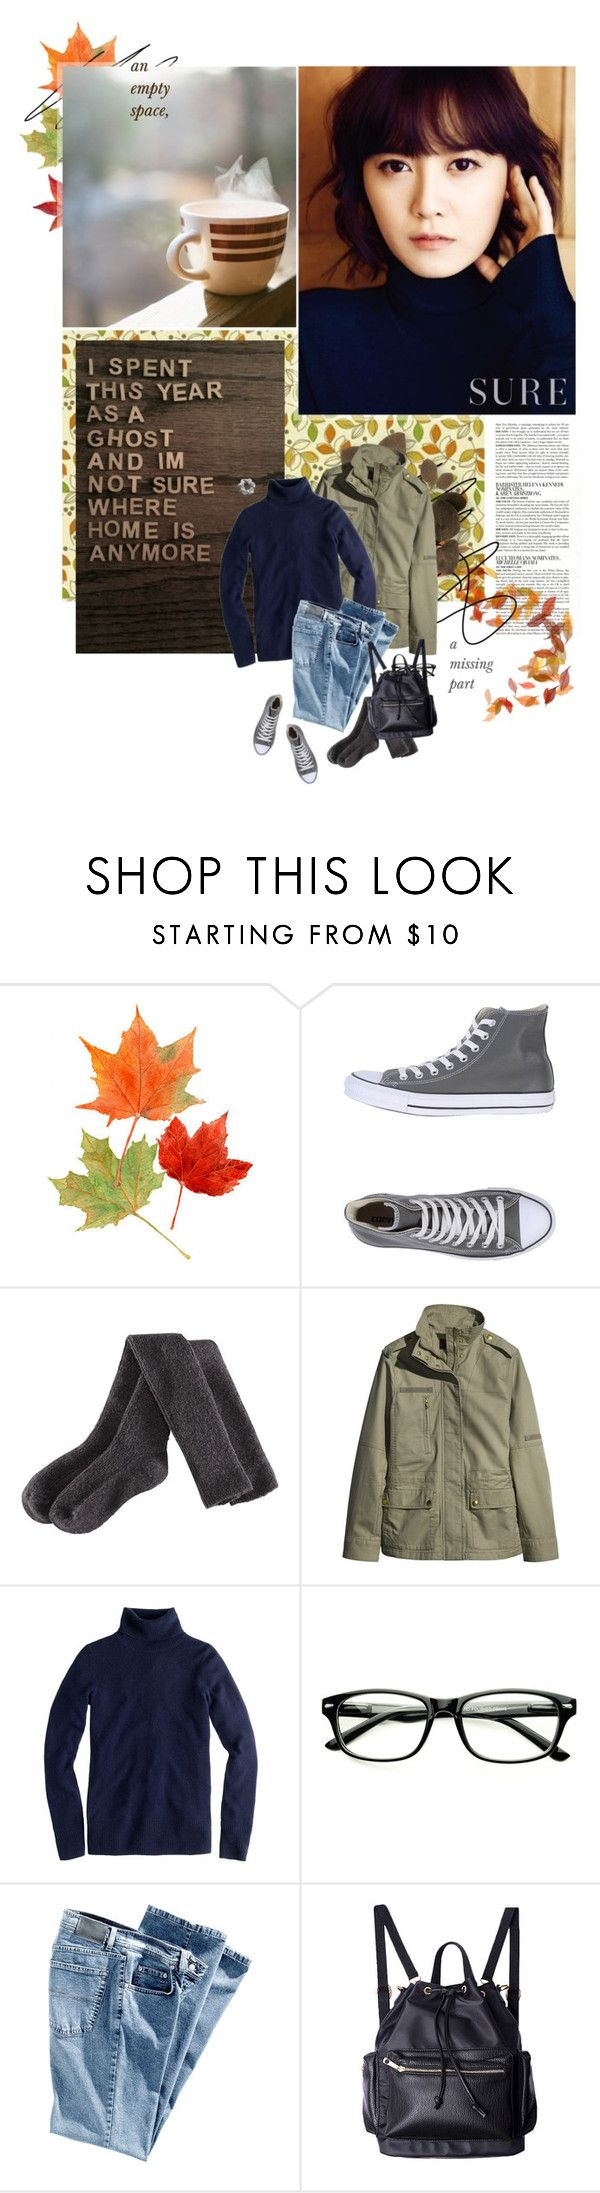 """lacuna"" by aurora-zg ❤ liked on Polyvore featuring McGinn, Koo, Converse, H&M and J.Crew"